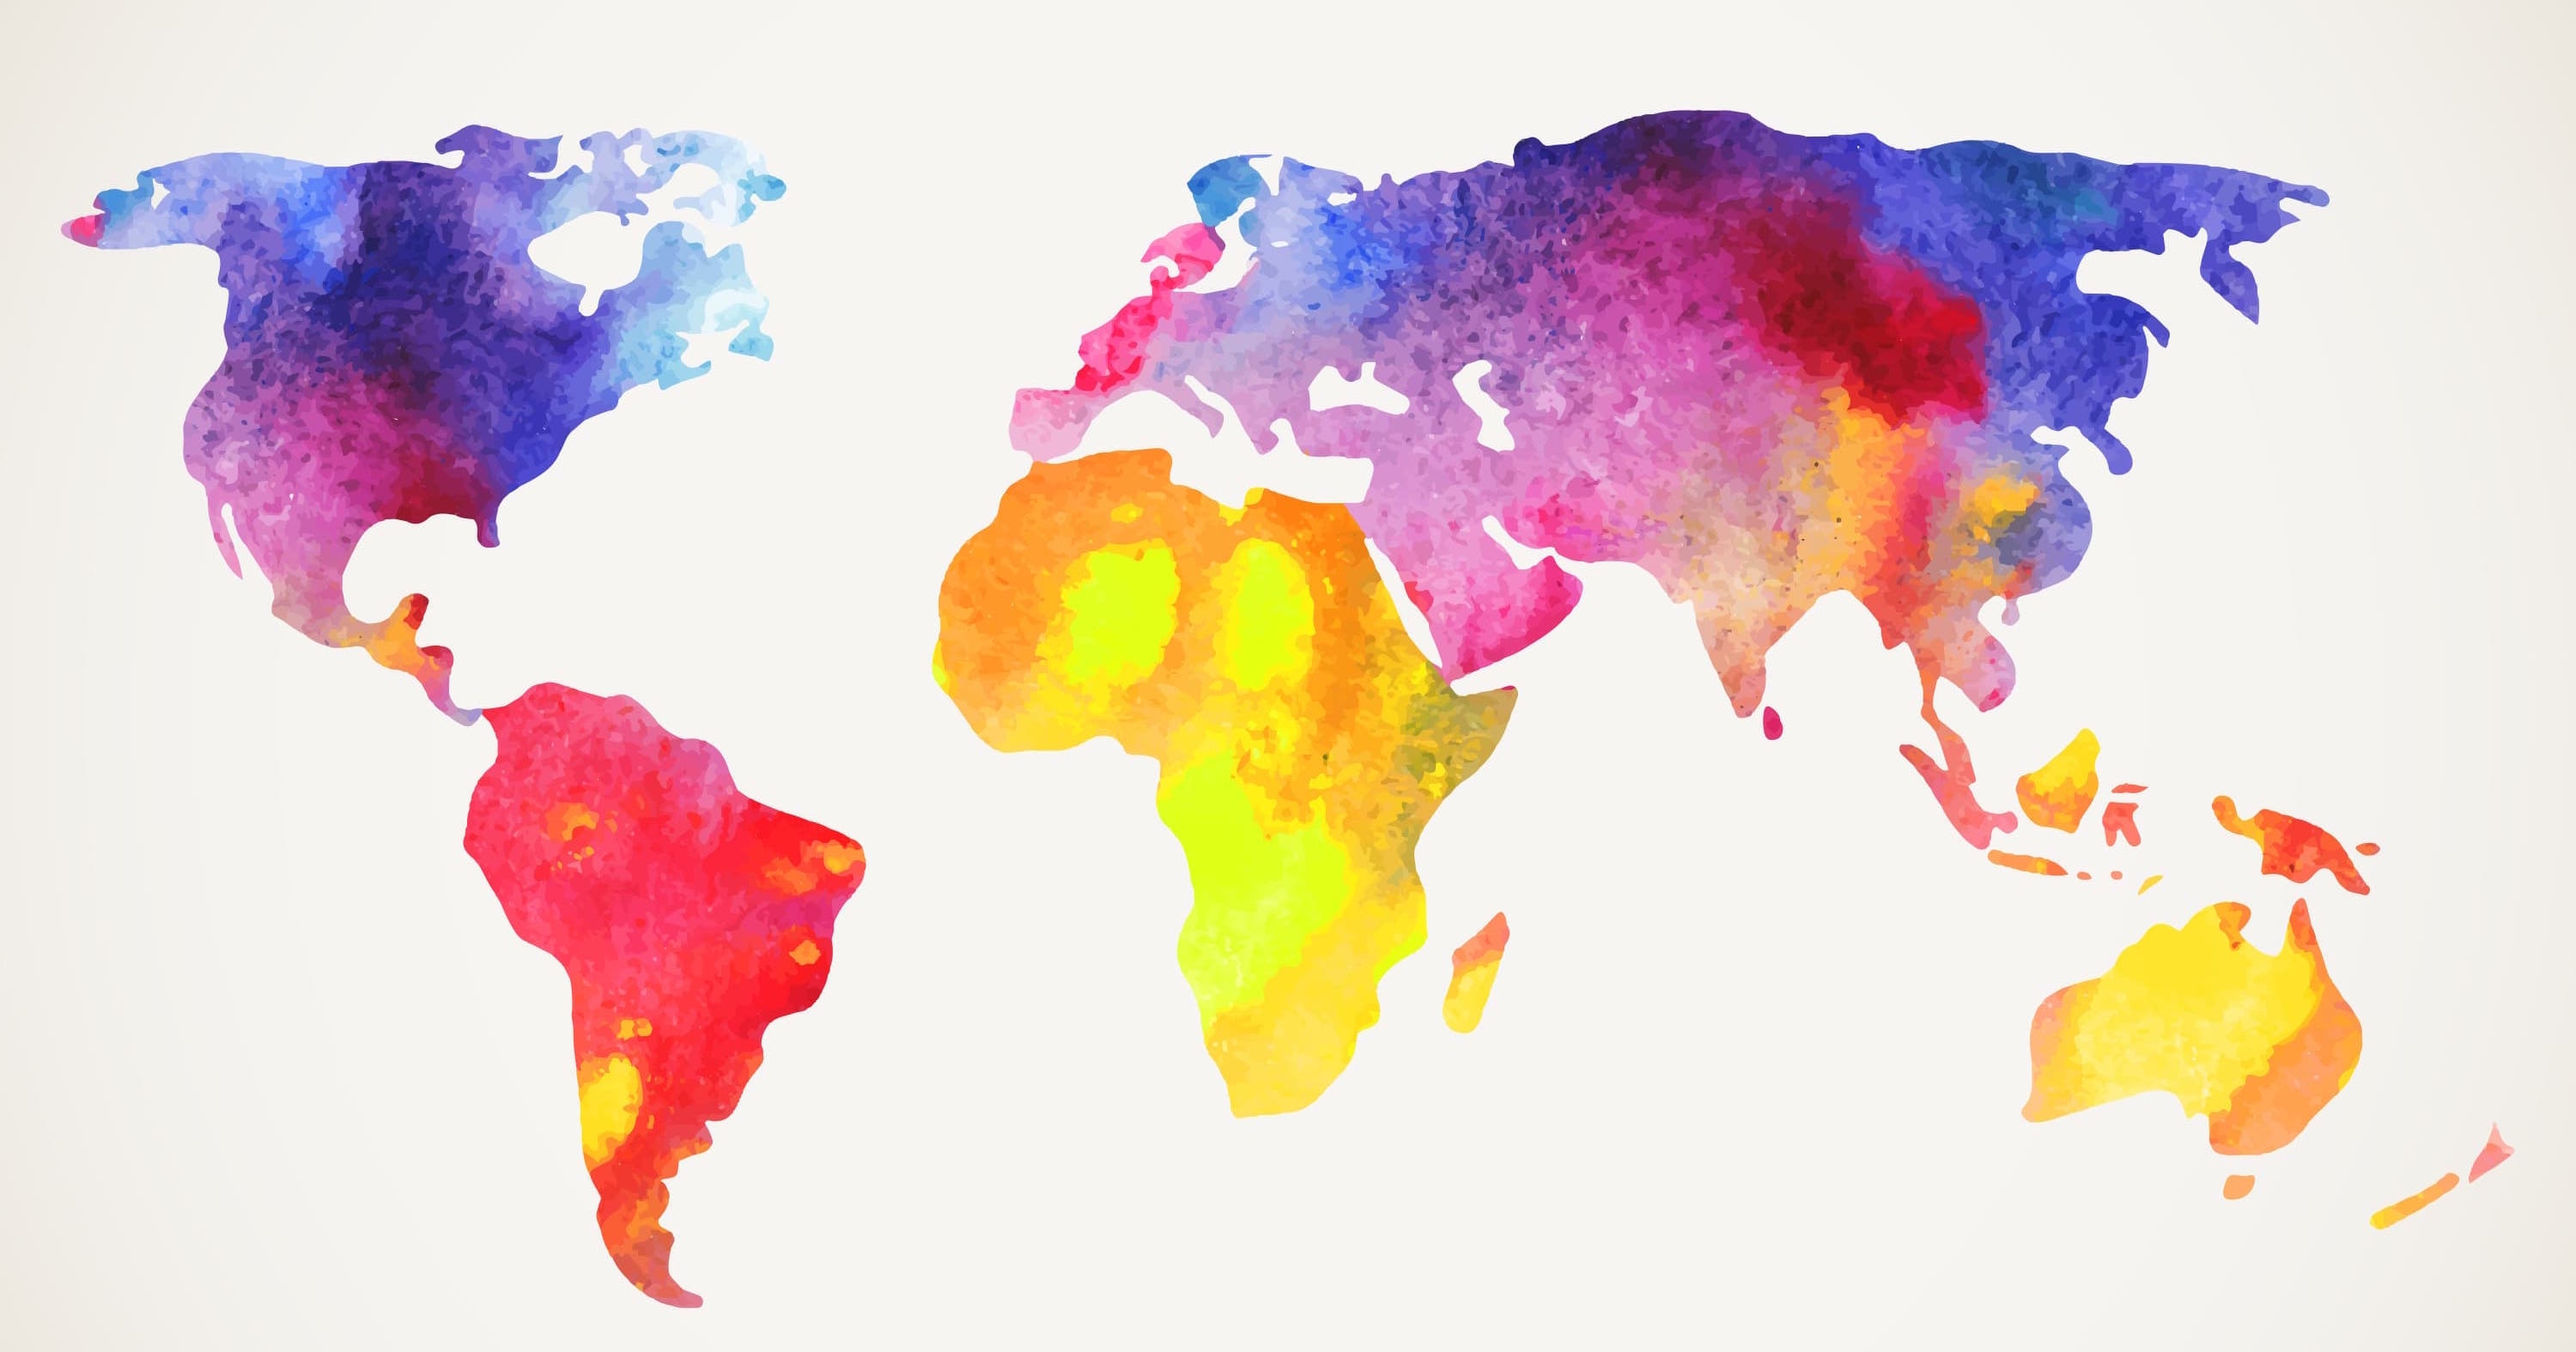 world-map-painted-with-watercolors_G1Vve6c__L-min